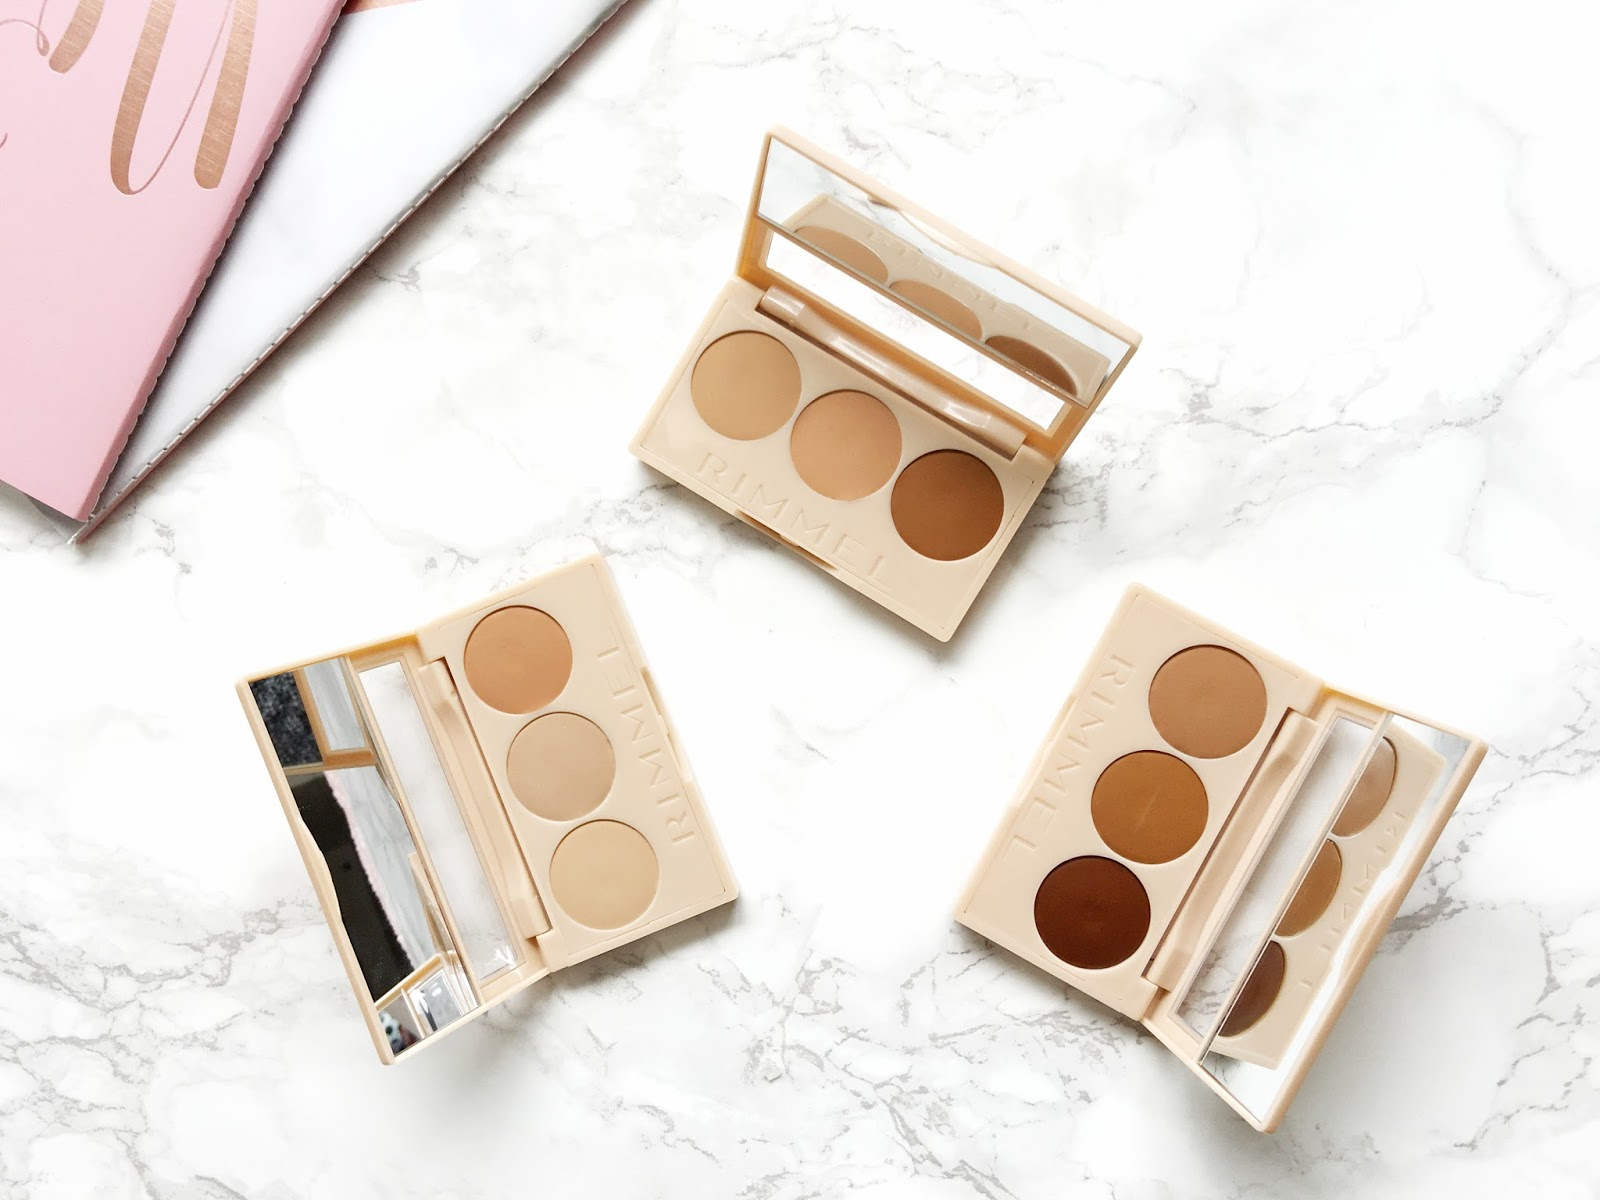 Rimmel #Insta Conceal and Contour Palettes